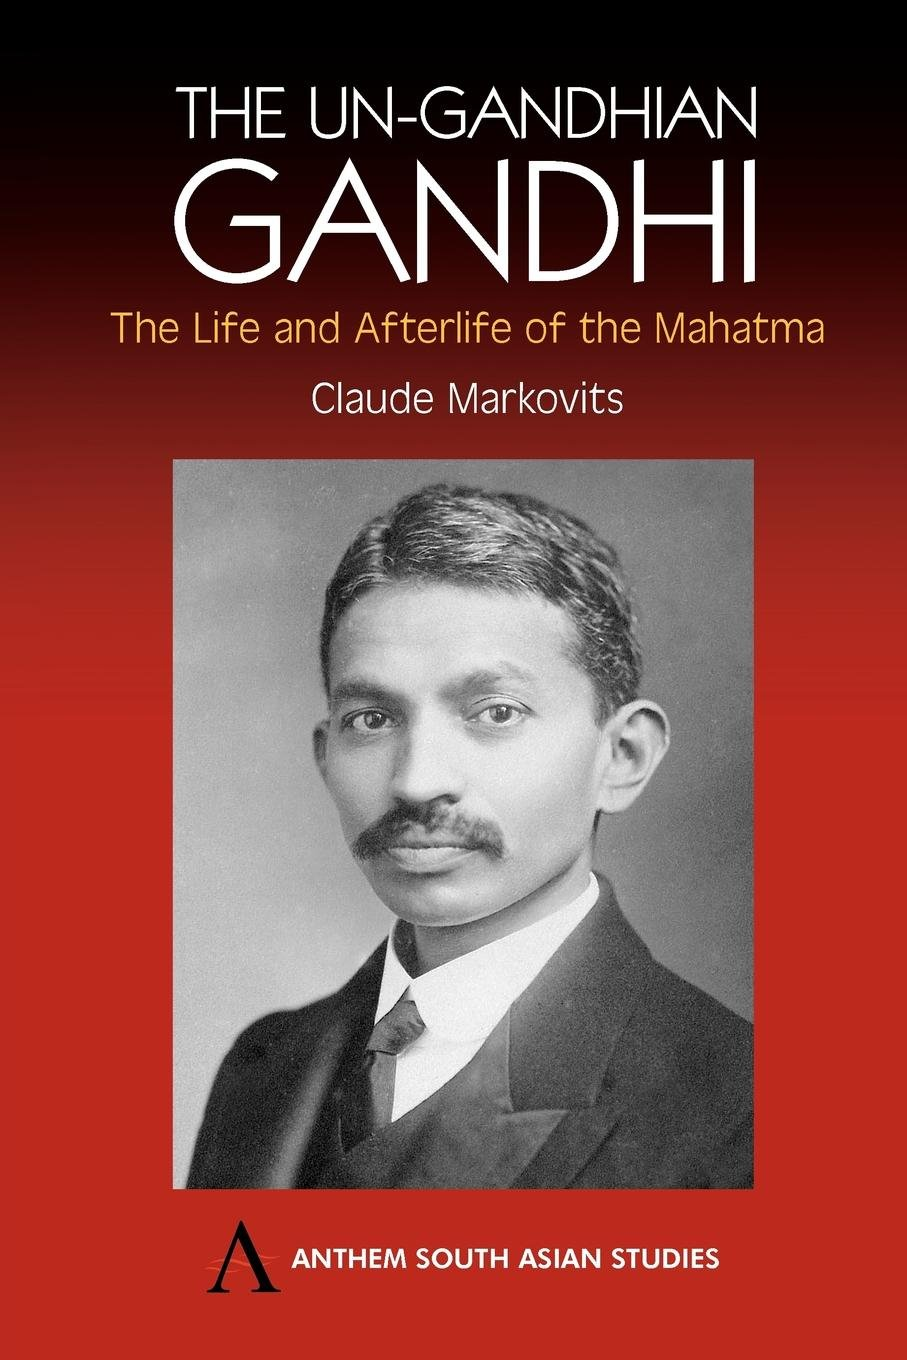 Traveller Location: The Un-Gandhian Gandhi: The Life and Afterlife of the Mahatma  (Anthem South Asian Studies) (9781843311270): Claude Markovits: Books